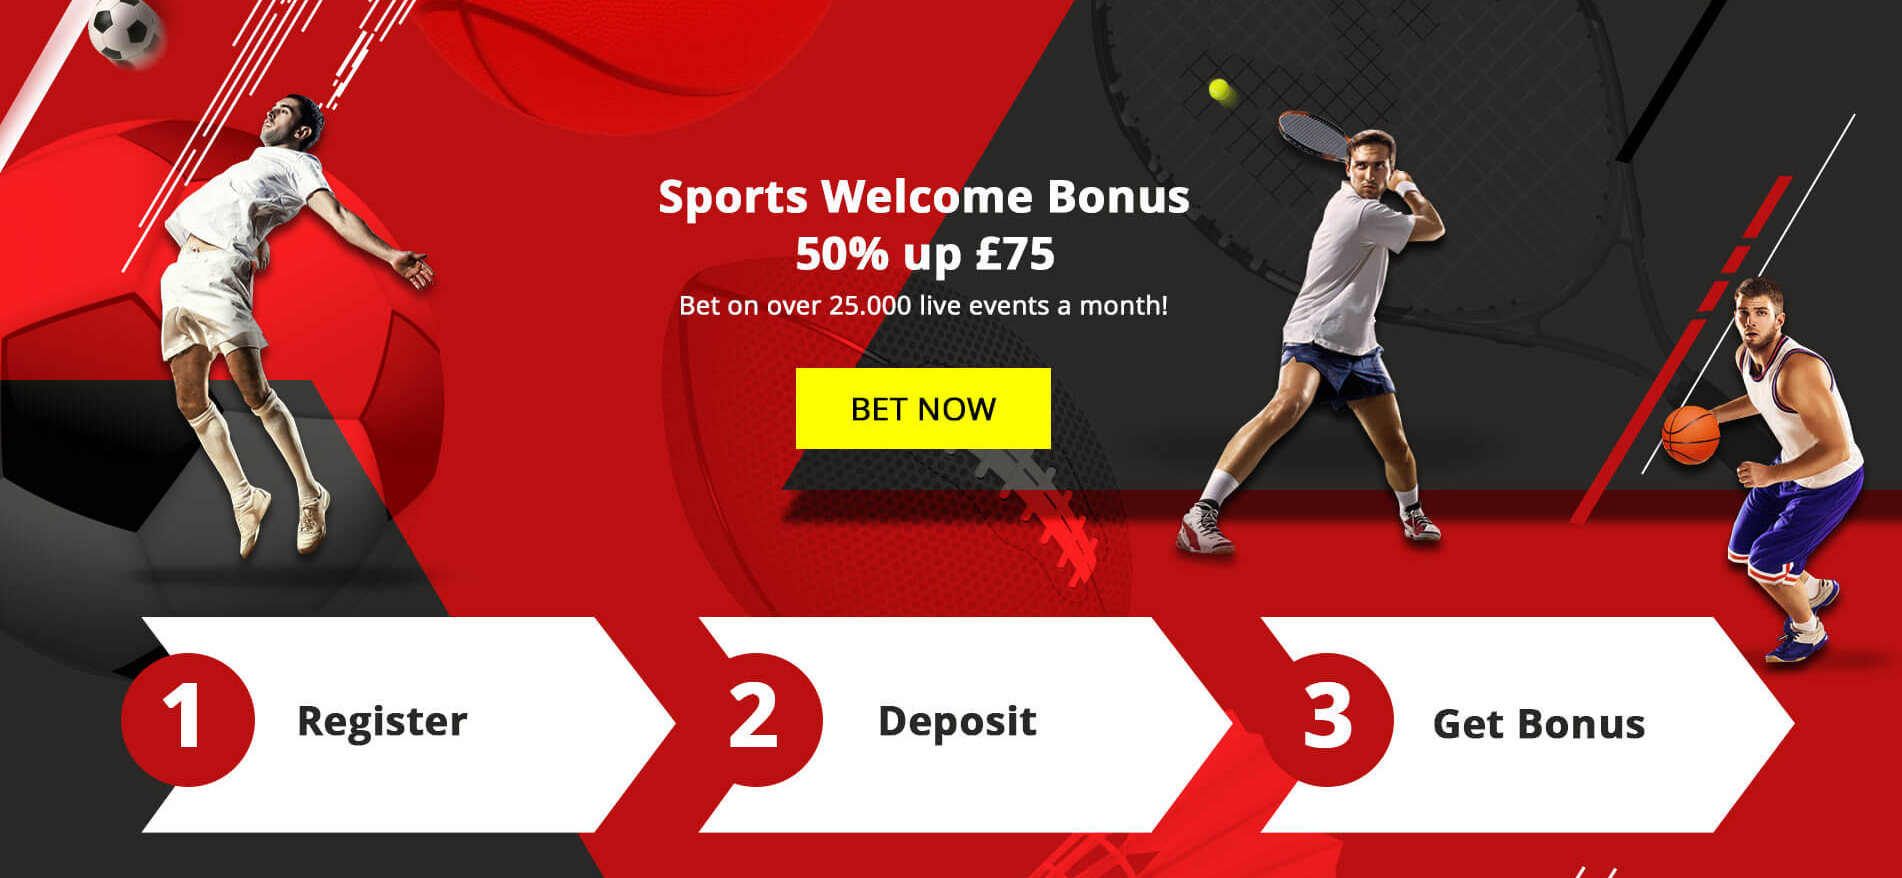 Jetbull betting operator has prepared a 50% invitation offer to start wagering on more that 25 000 live ents with the bookie!